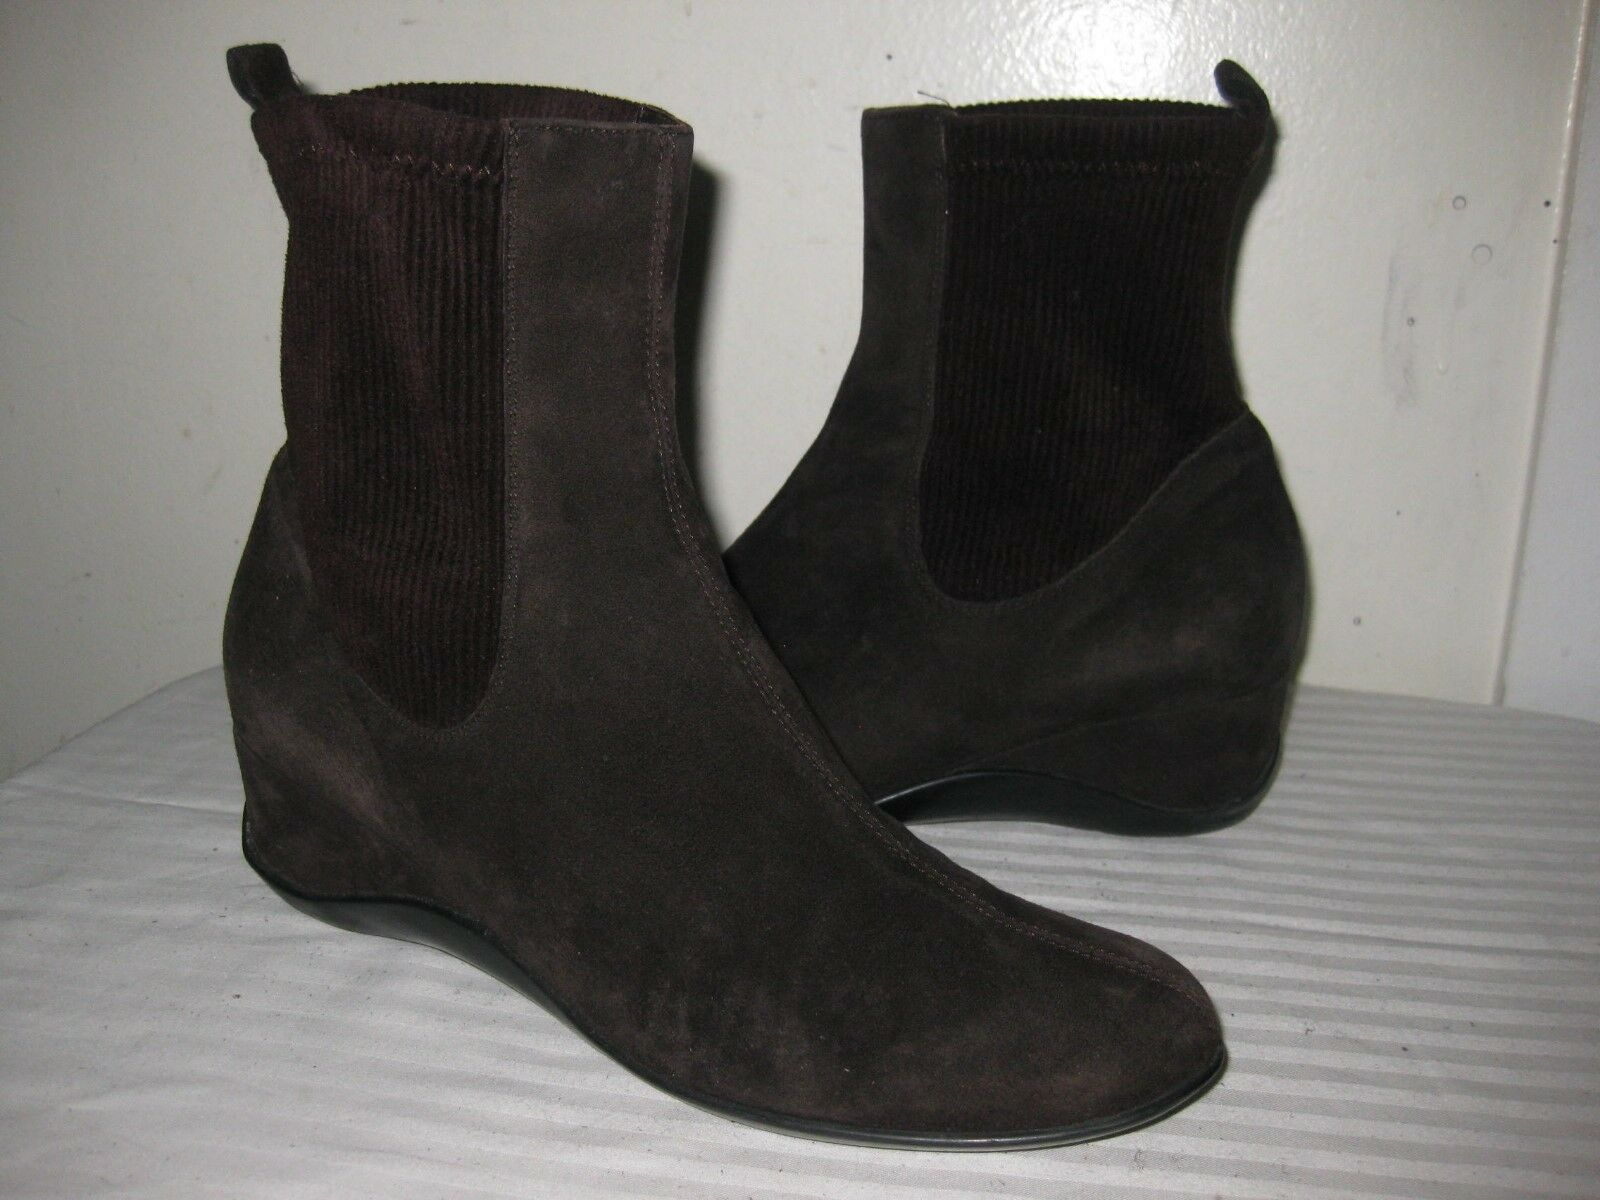 Unbranded Suede Chocolate Ankle Wedge Boots shoes Women's Size 40   9.5